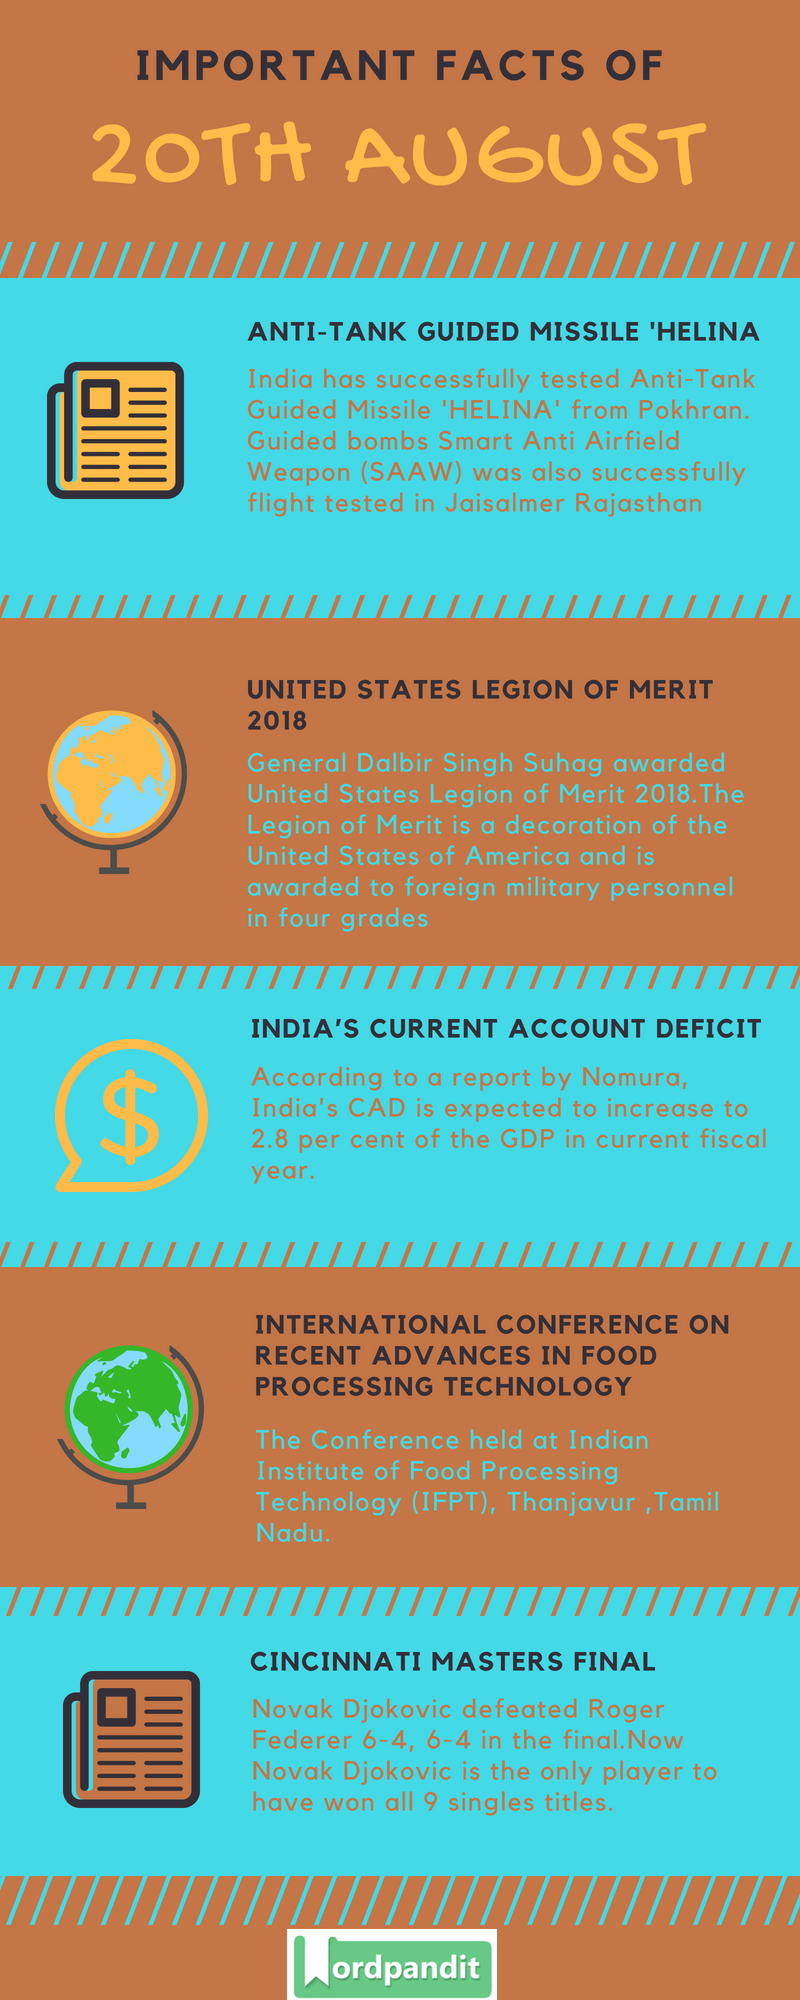 Daily Current Affairs 20 August 2018 Current Affairs Quiz August 20 2018 Current Affairs Infographic